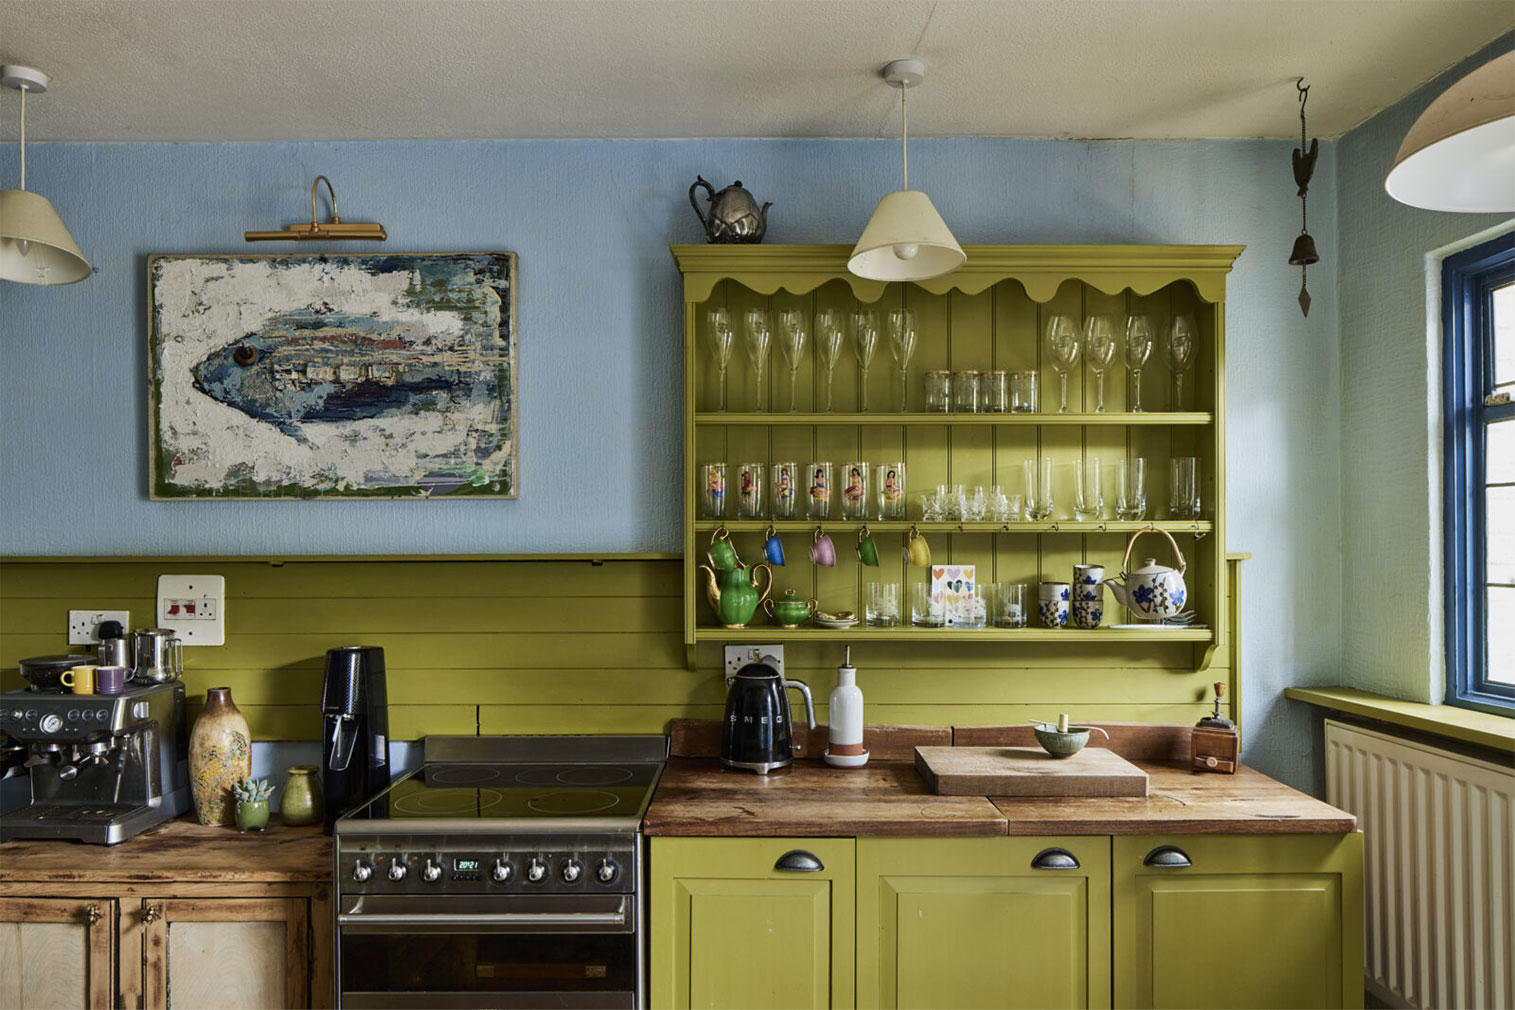 The kitchen features bespoke cabinetry